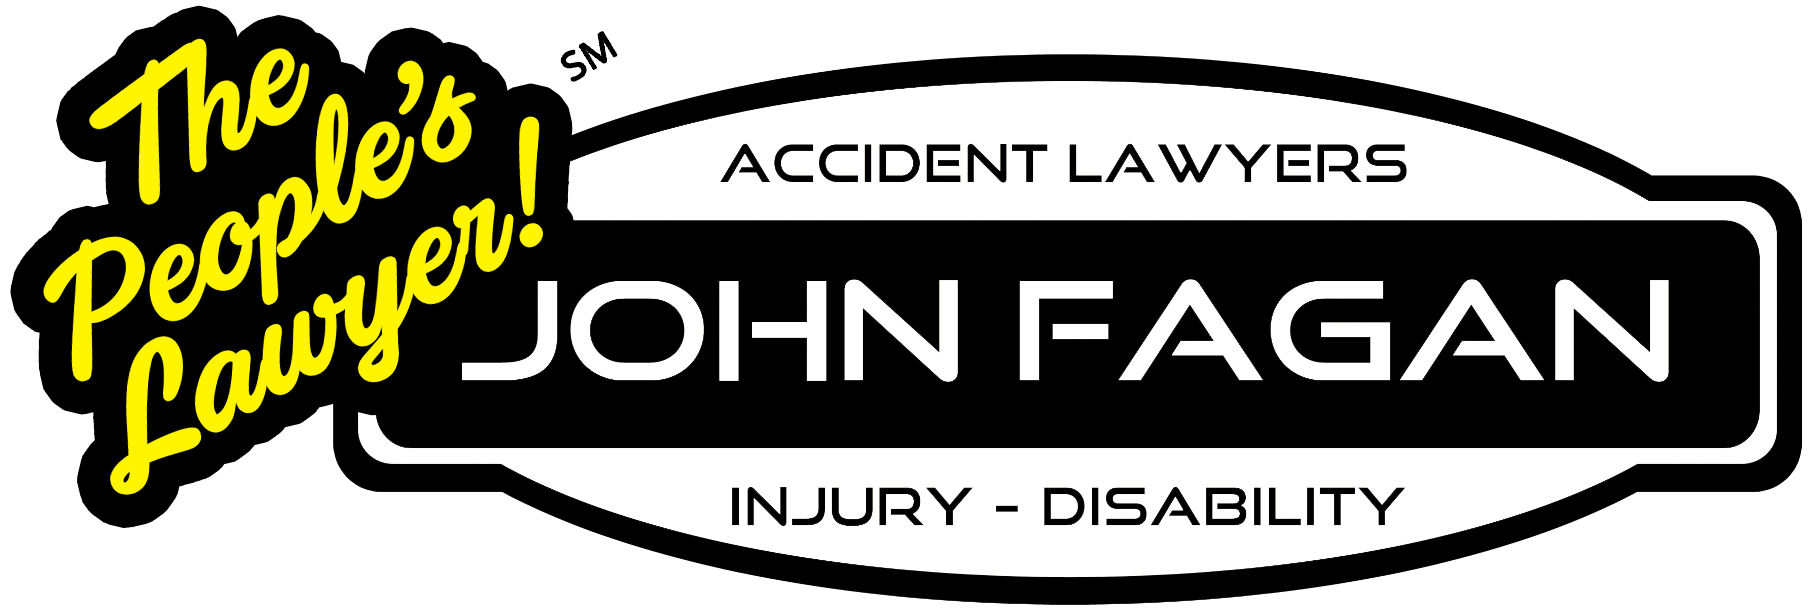 <b>Accident Lawyer John Fagan</b>